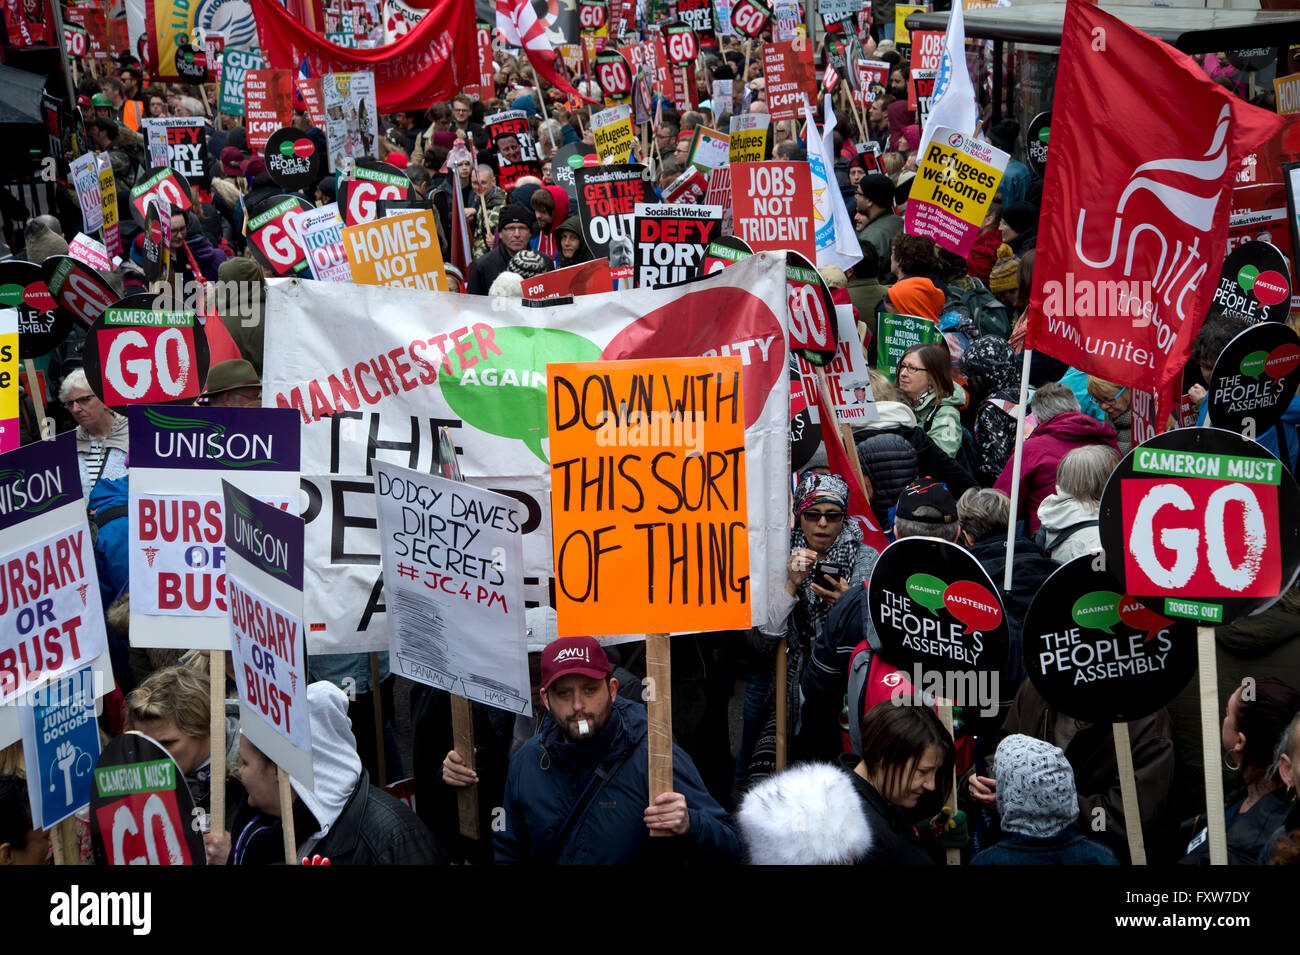 March ,organised by the People's Assembly,  against austerity measures affecting health, education, housing - Stock Image